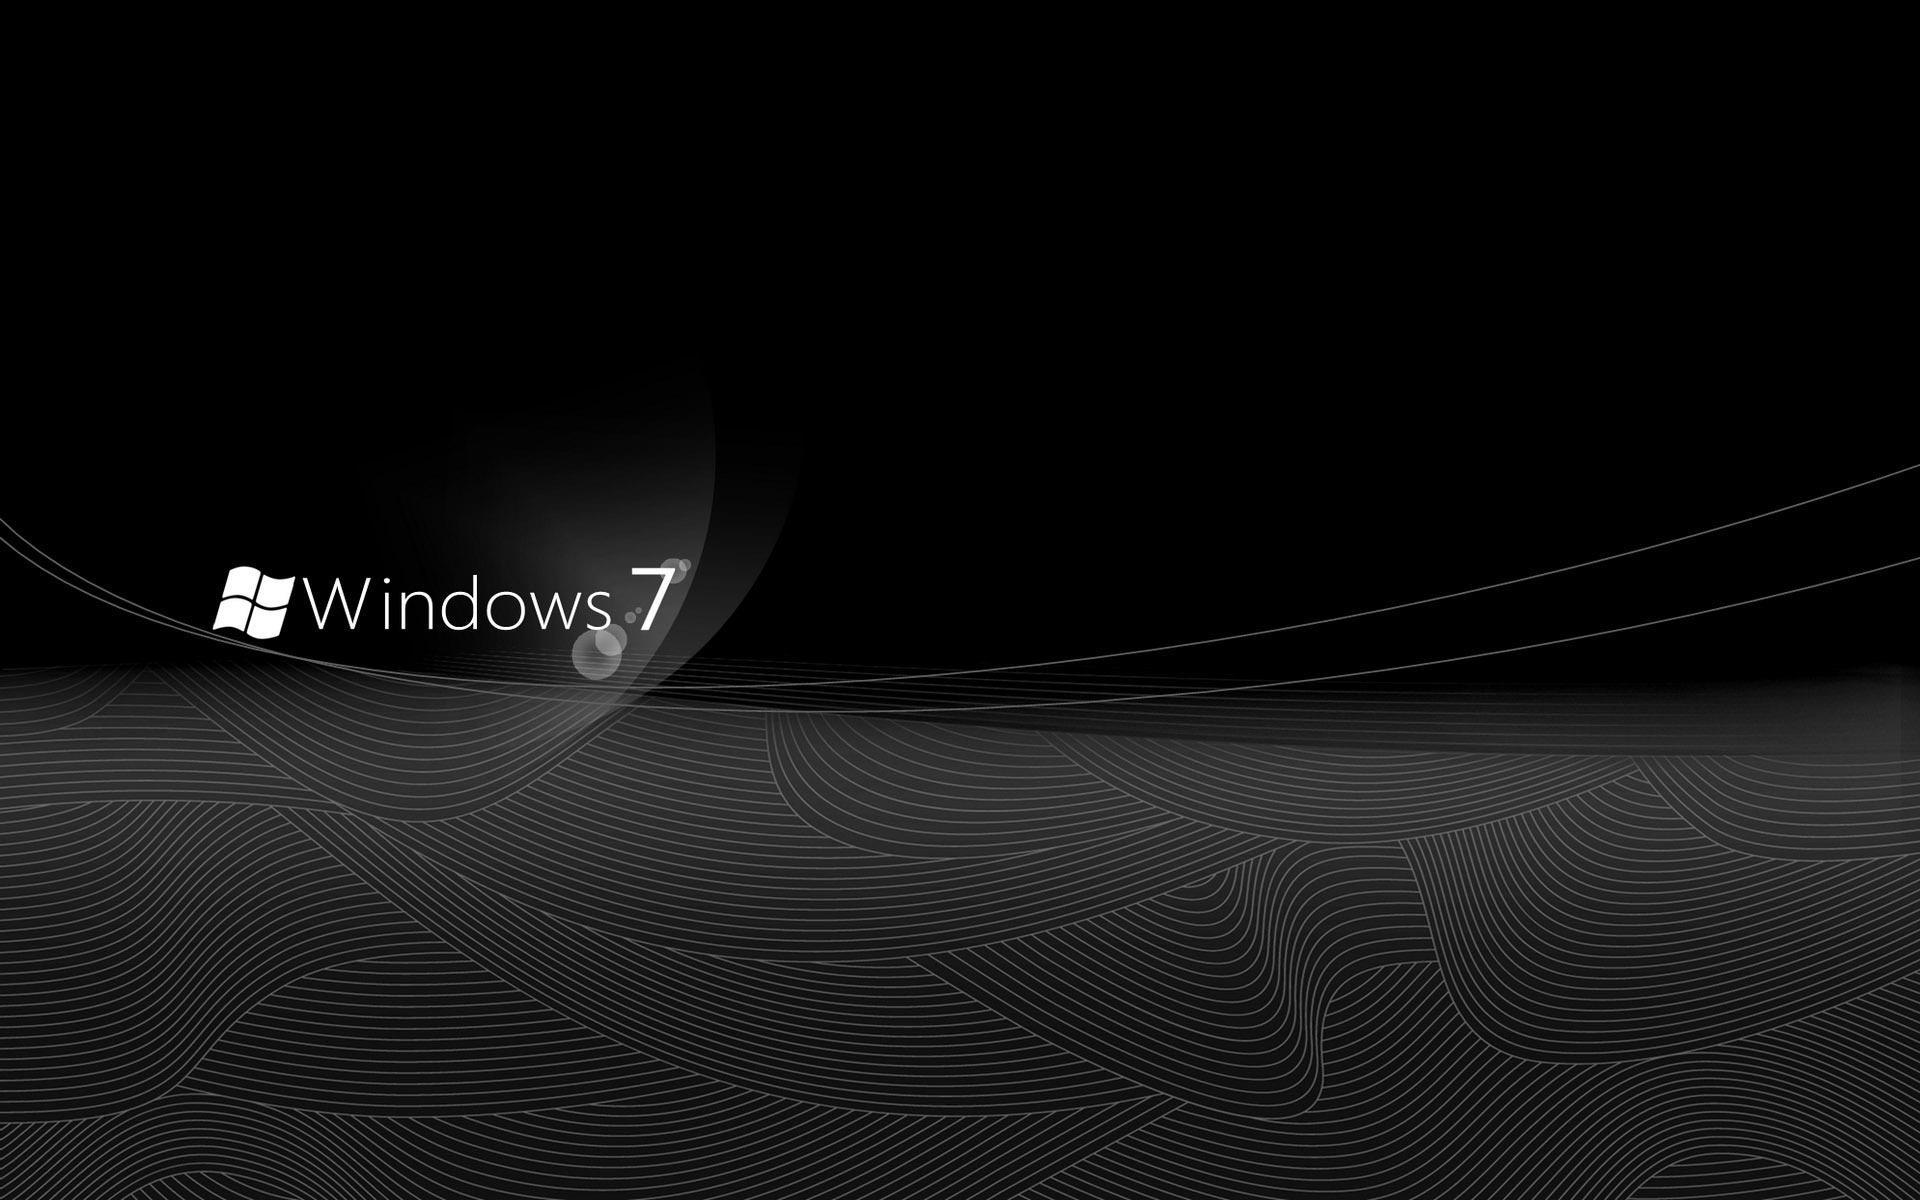 hd wallpapers for windows 7 - wallpaper cave